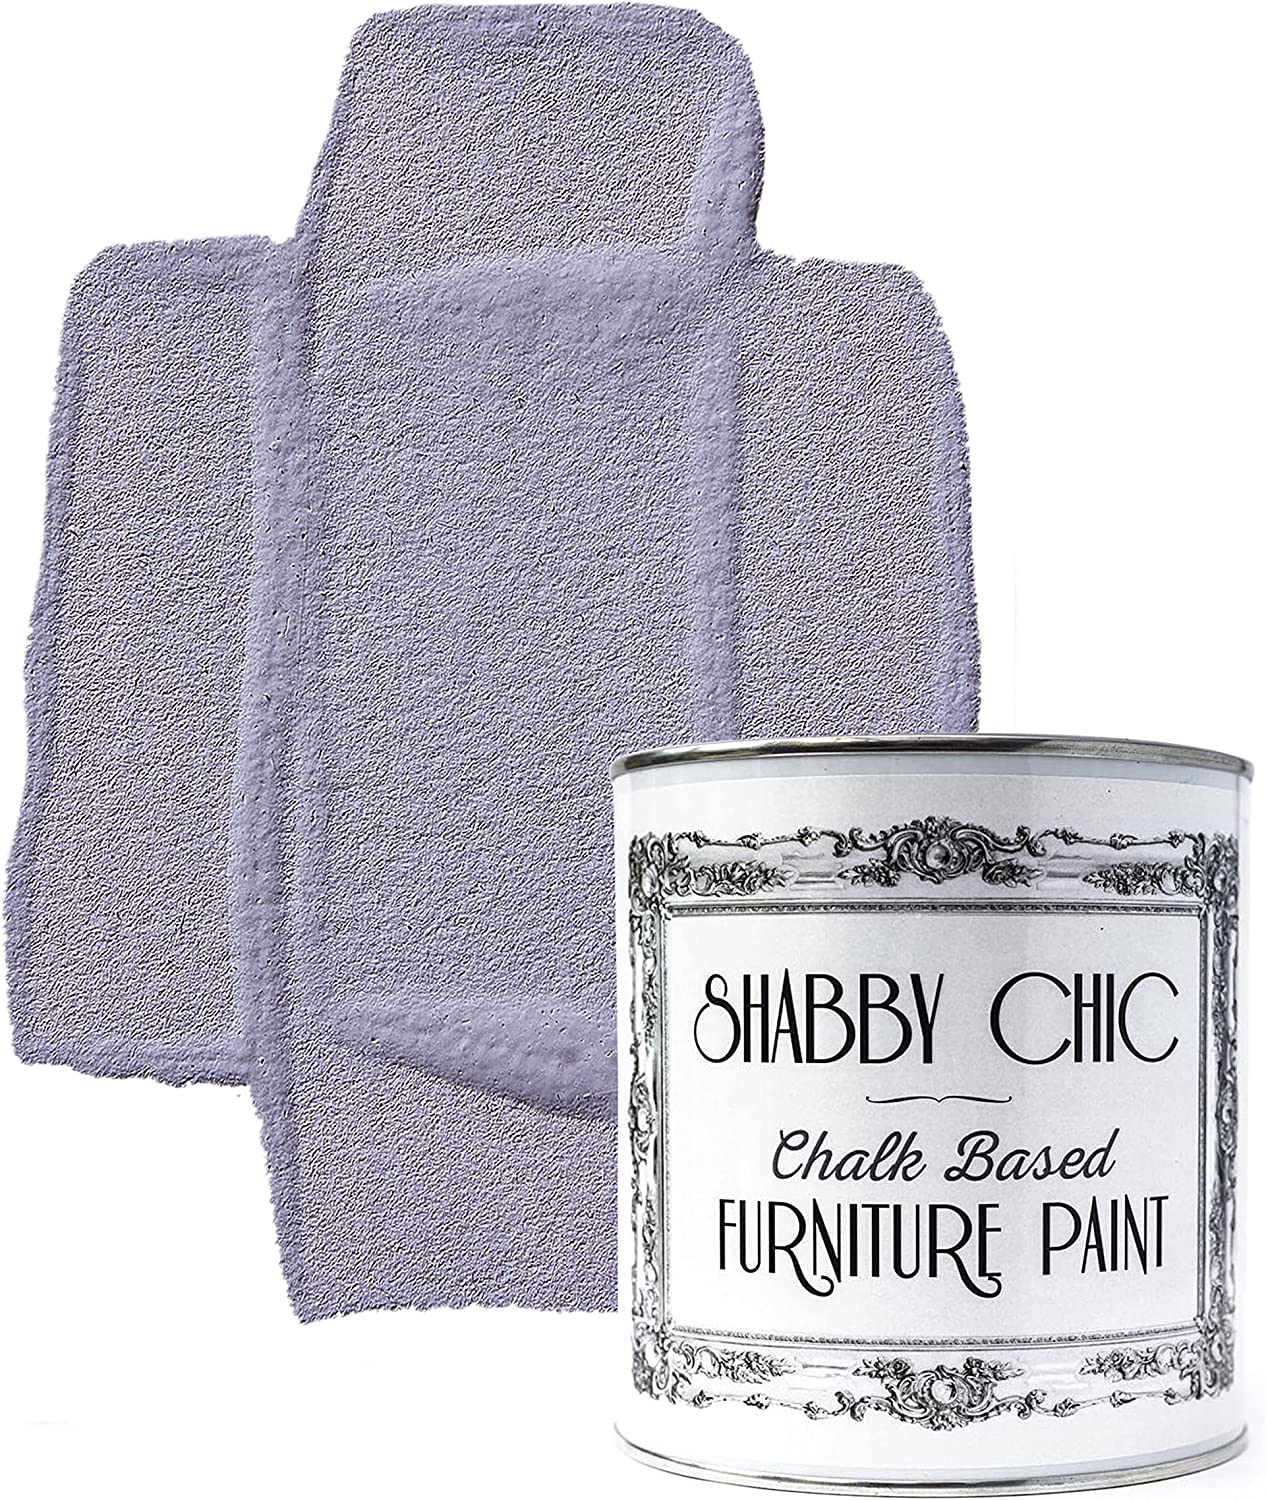 Shabby Chic Chalked Furniture Paint: Luxurious Chalk Finish Furniture and Craft Paint for Home Decor, DIY Projects, Wood Furniture - Interior Paints with Rustic Matte Finish - Liter - Scottish Heather